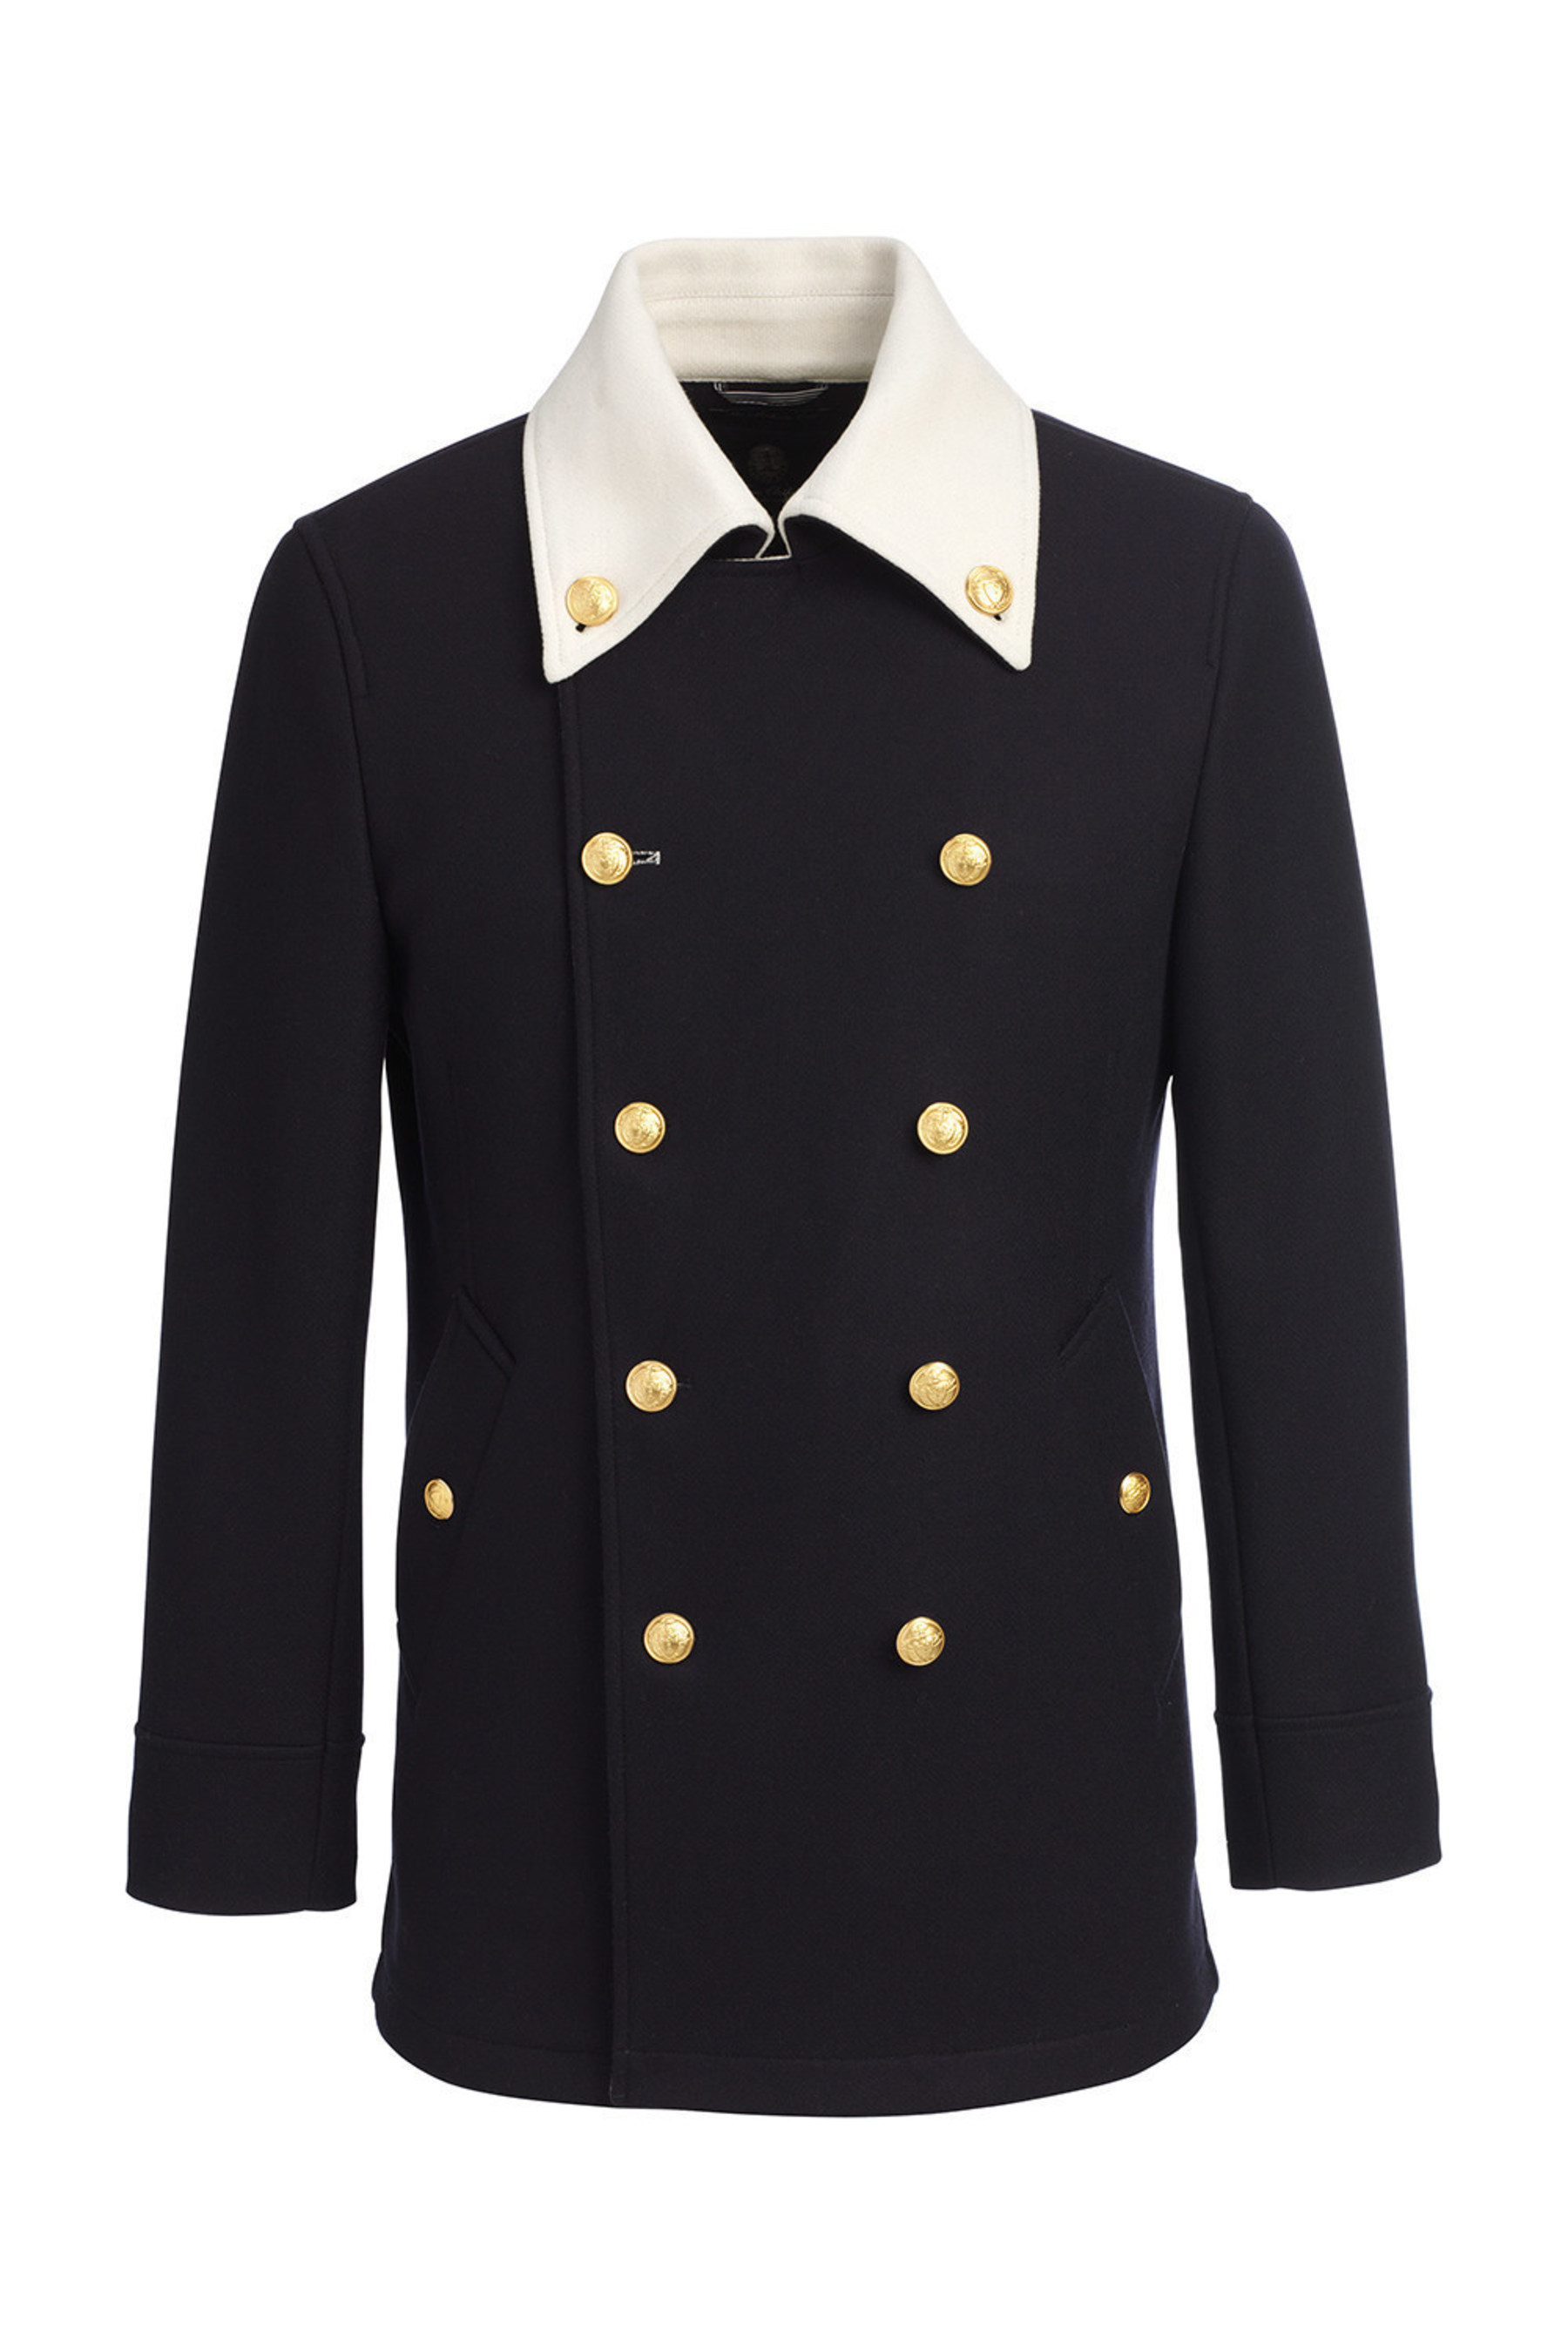 To honor the date of the nation's independence, Lands' End will offer 1776 Special Edition Coats for men and women available for pre-order starting on the Fourth of July at www.landsend.com/1776. Each coat will feature a distinctive label marking the limited-edition sequence in the line.